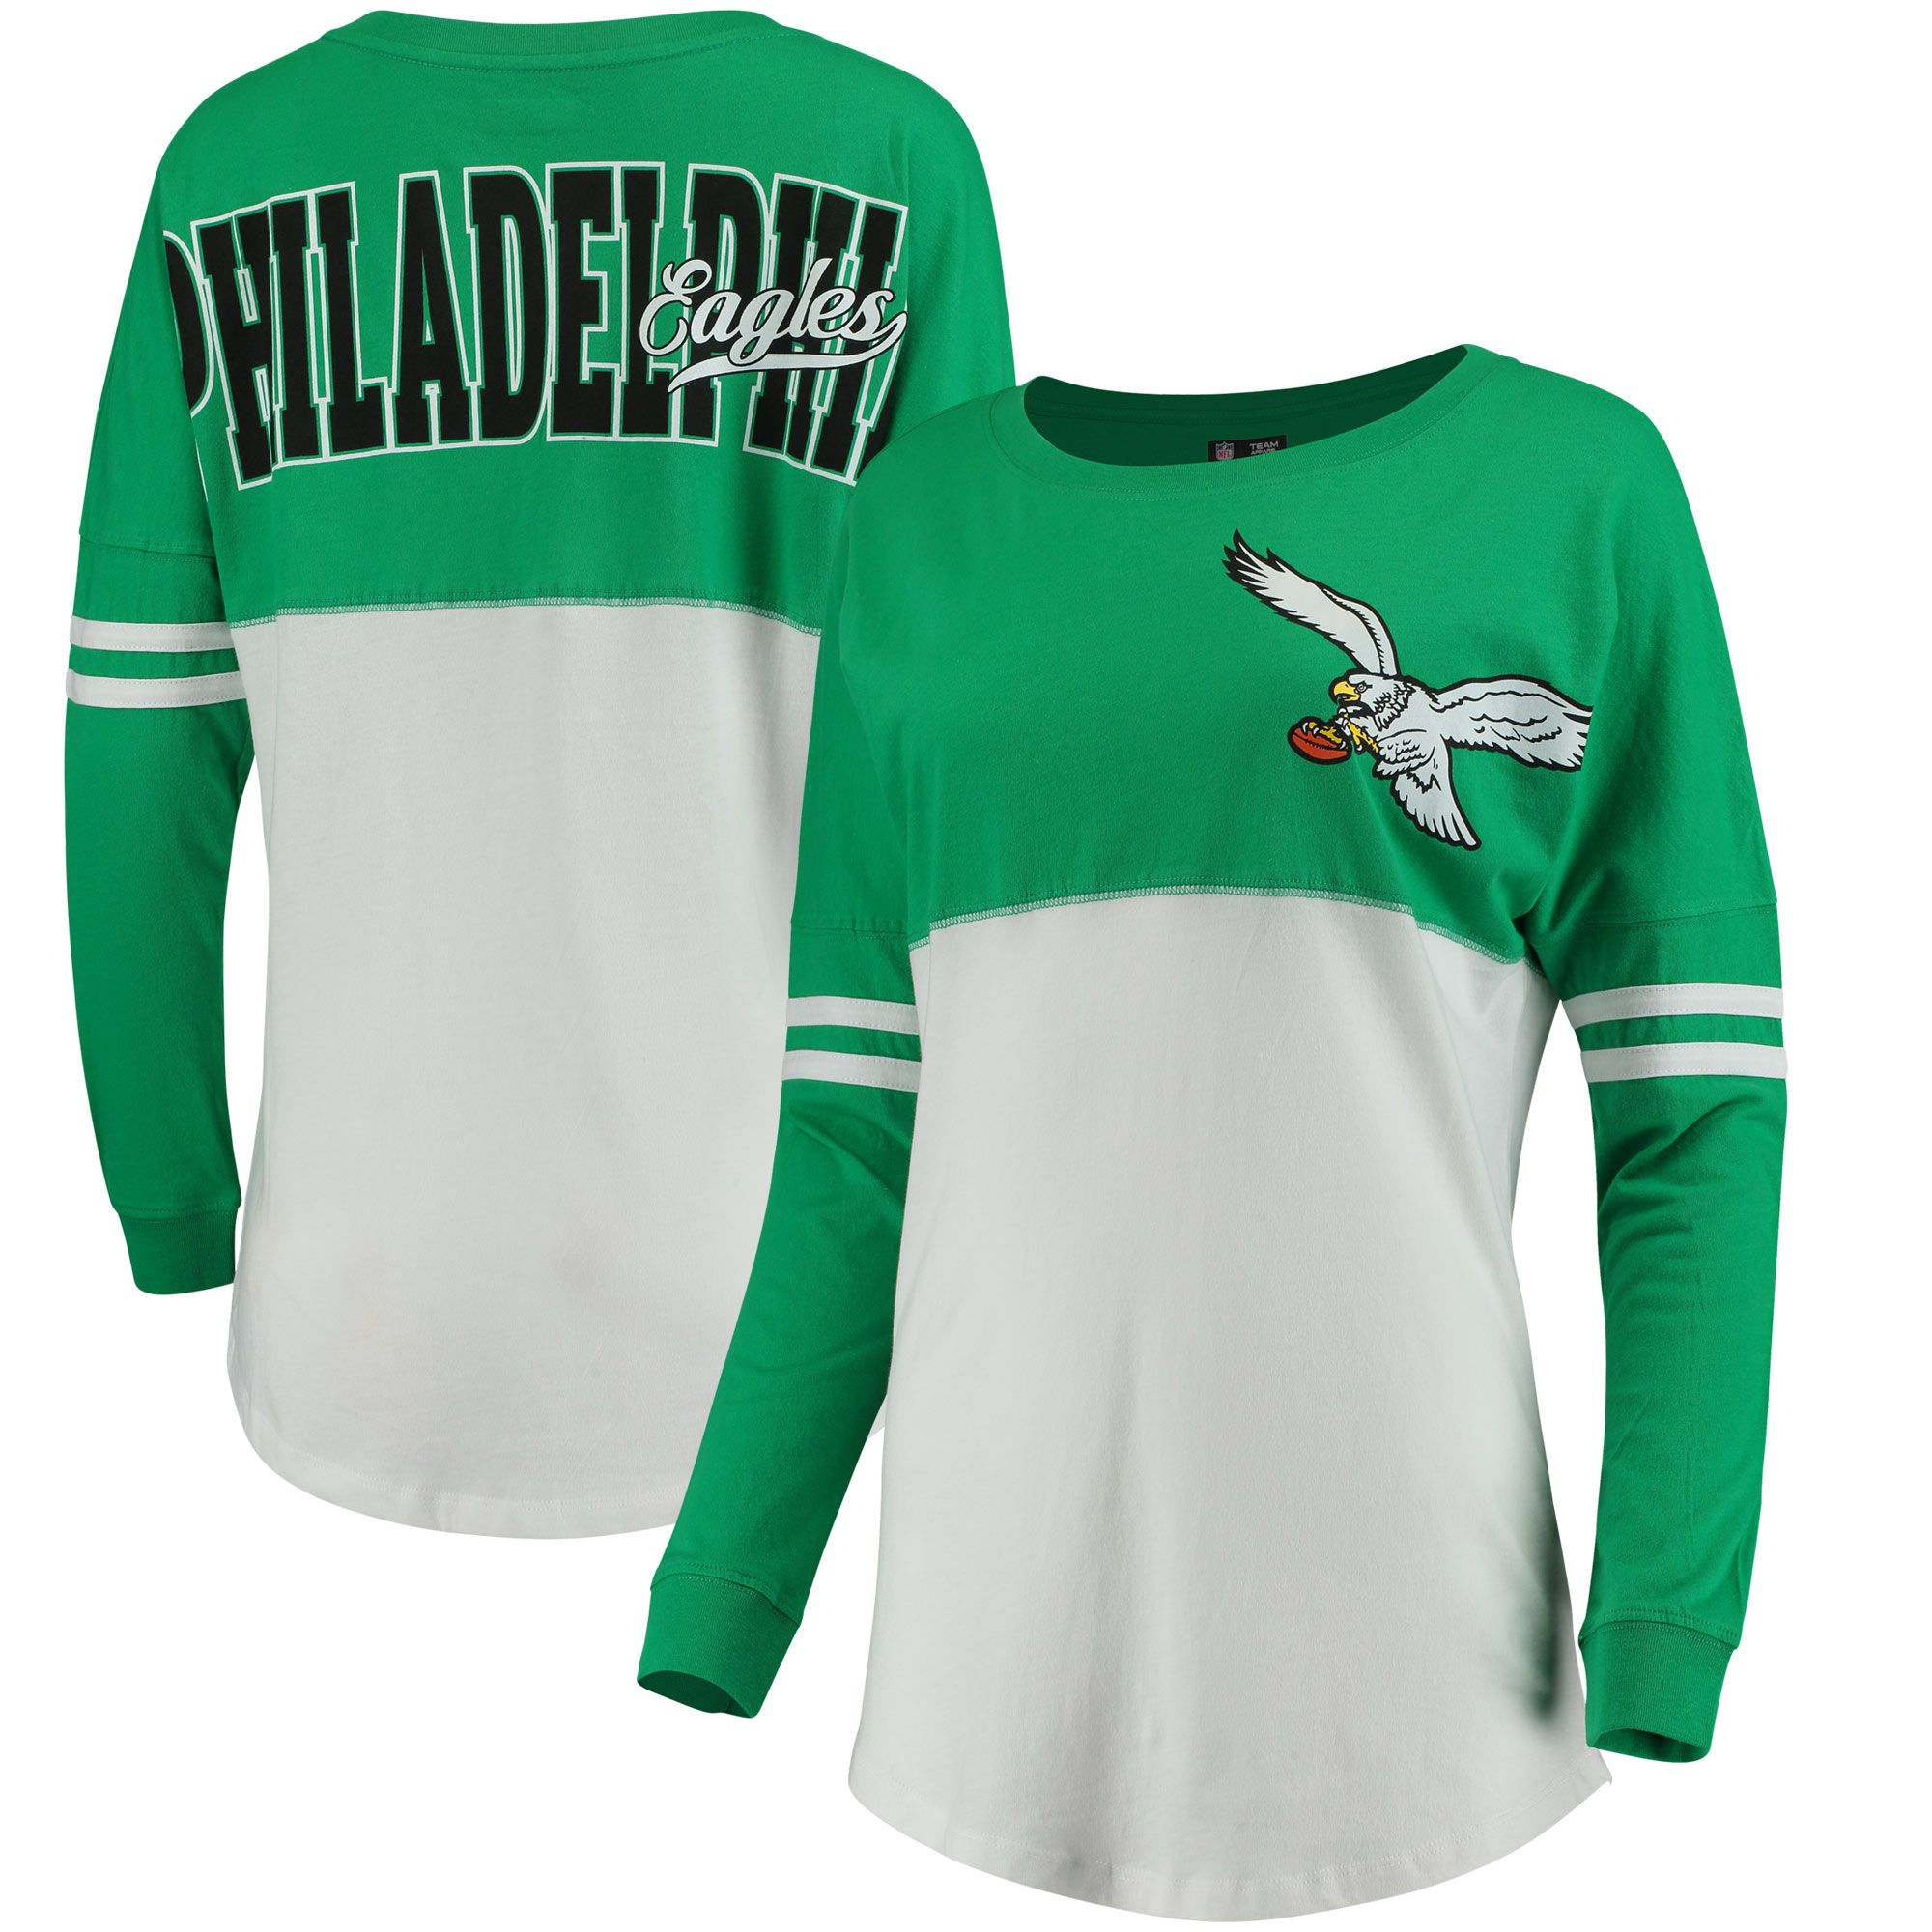 6b161d54d 5th   Ocean by New Era Philadelphia Eagles Women s Kelly Green White  Throwback Spirit Long Sleeve T-Shirt